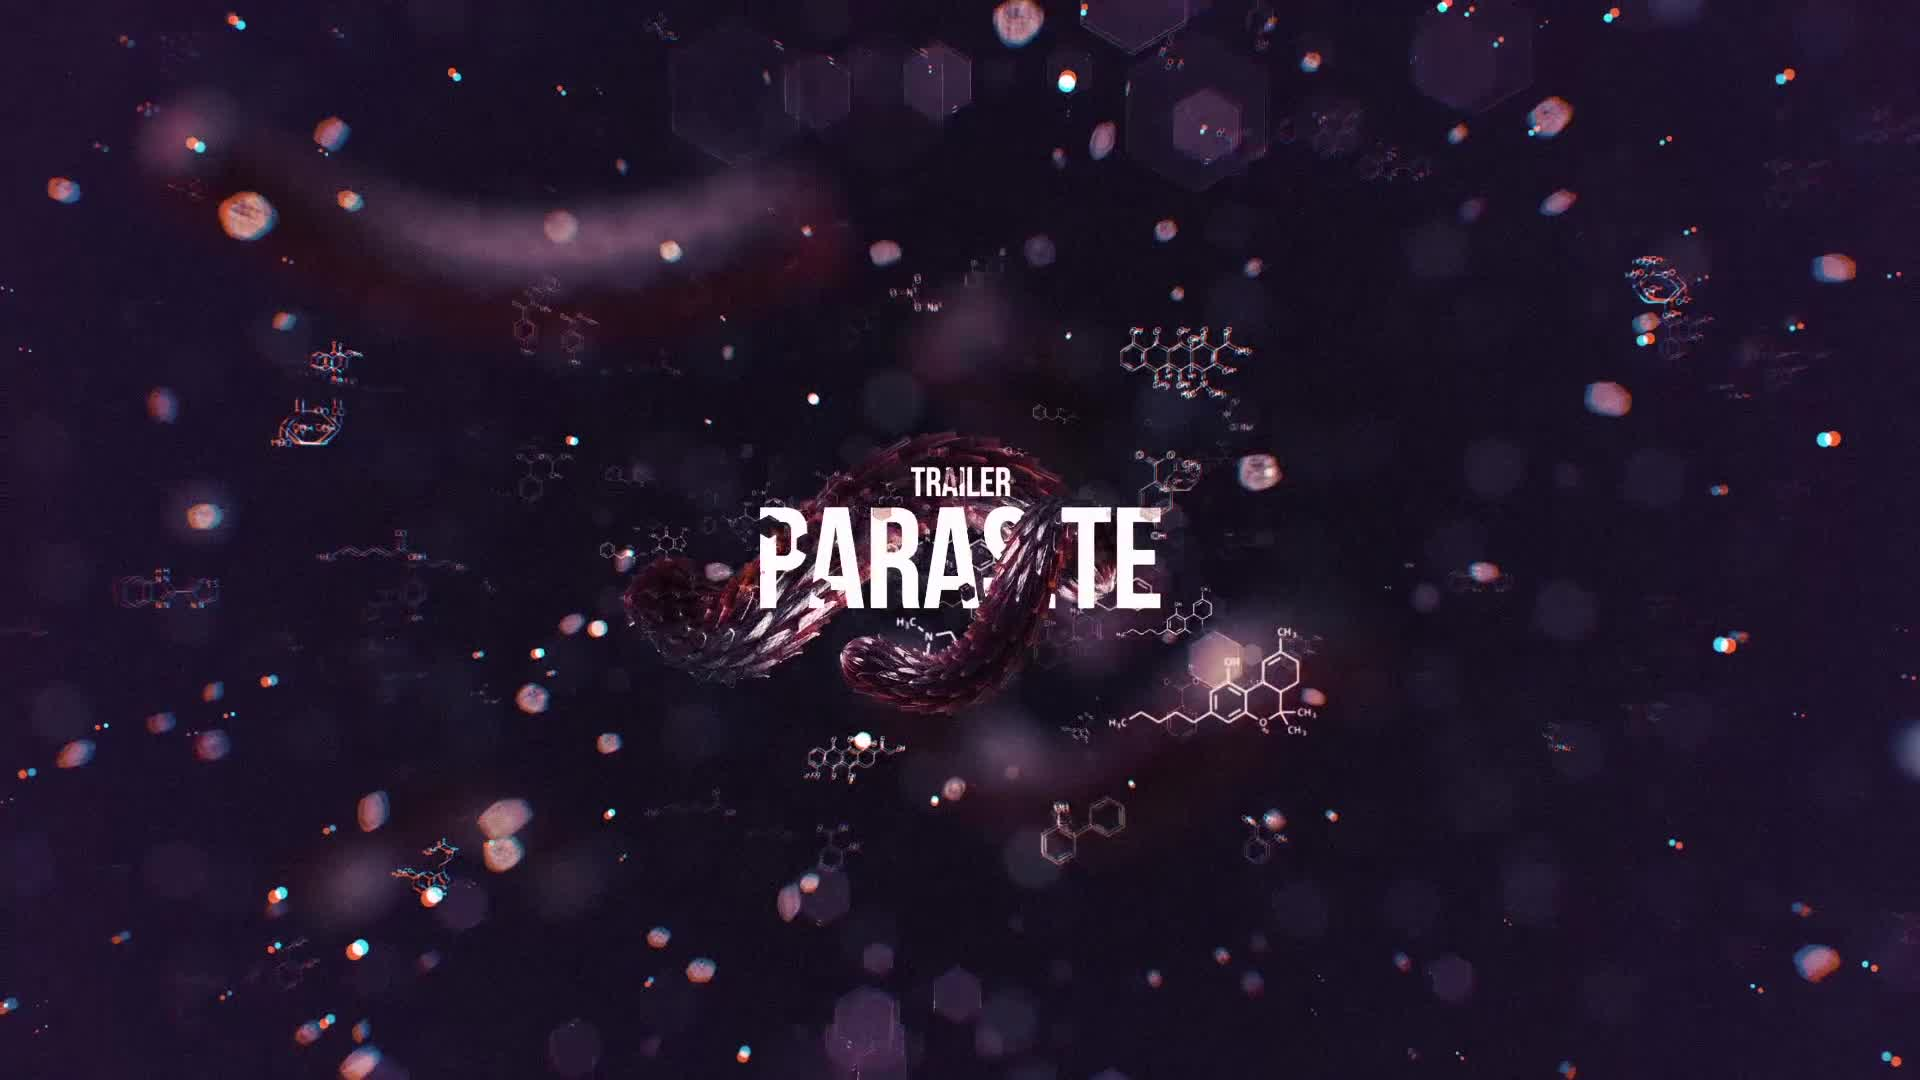 Parasite Trailer - Download Videohive 22513458